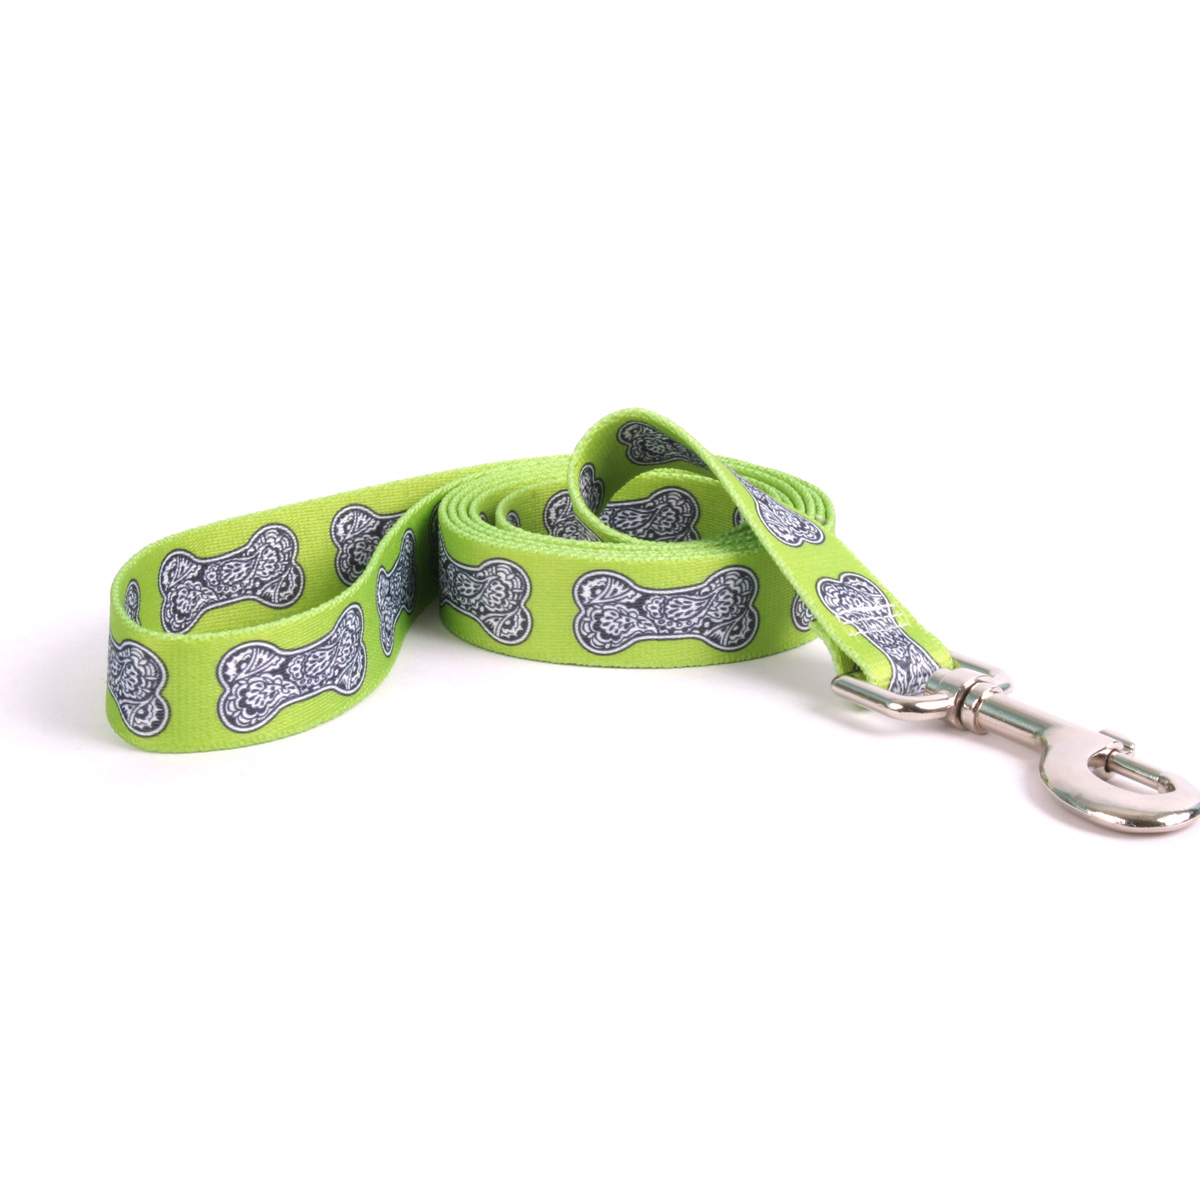 Bella Bone Green Lead